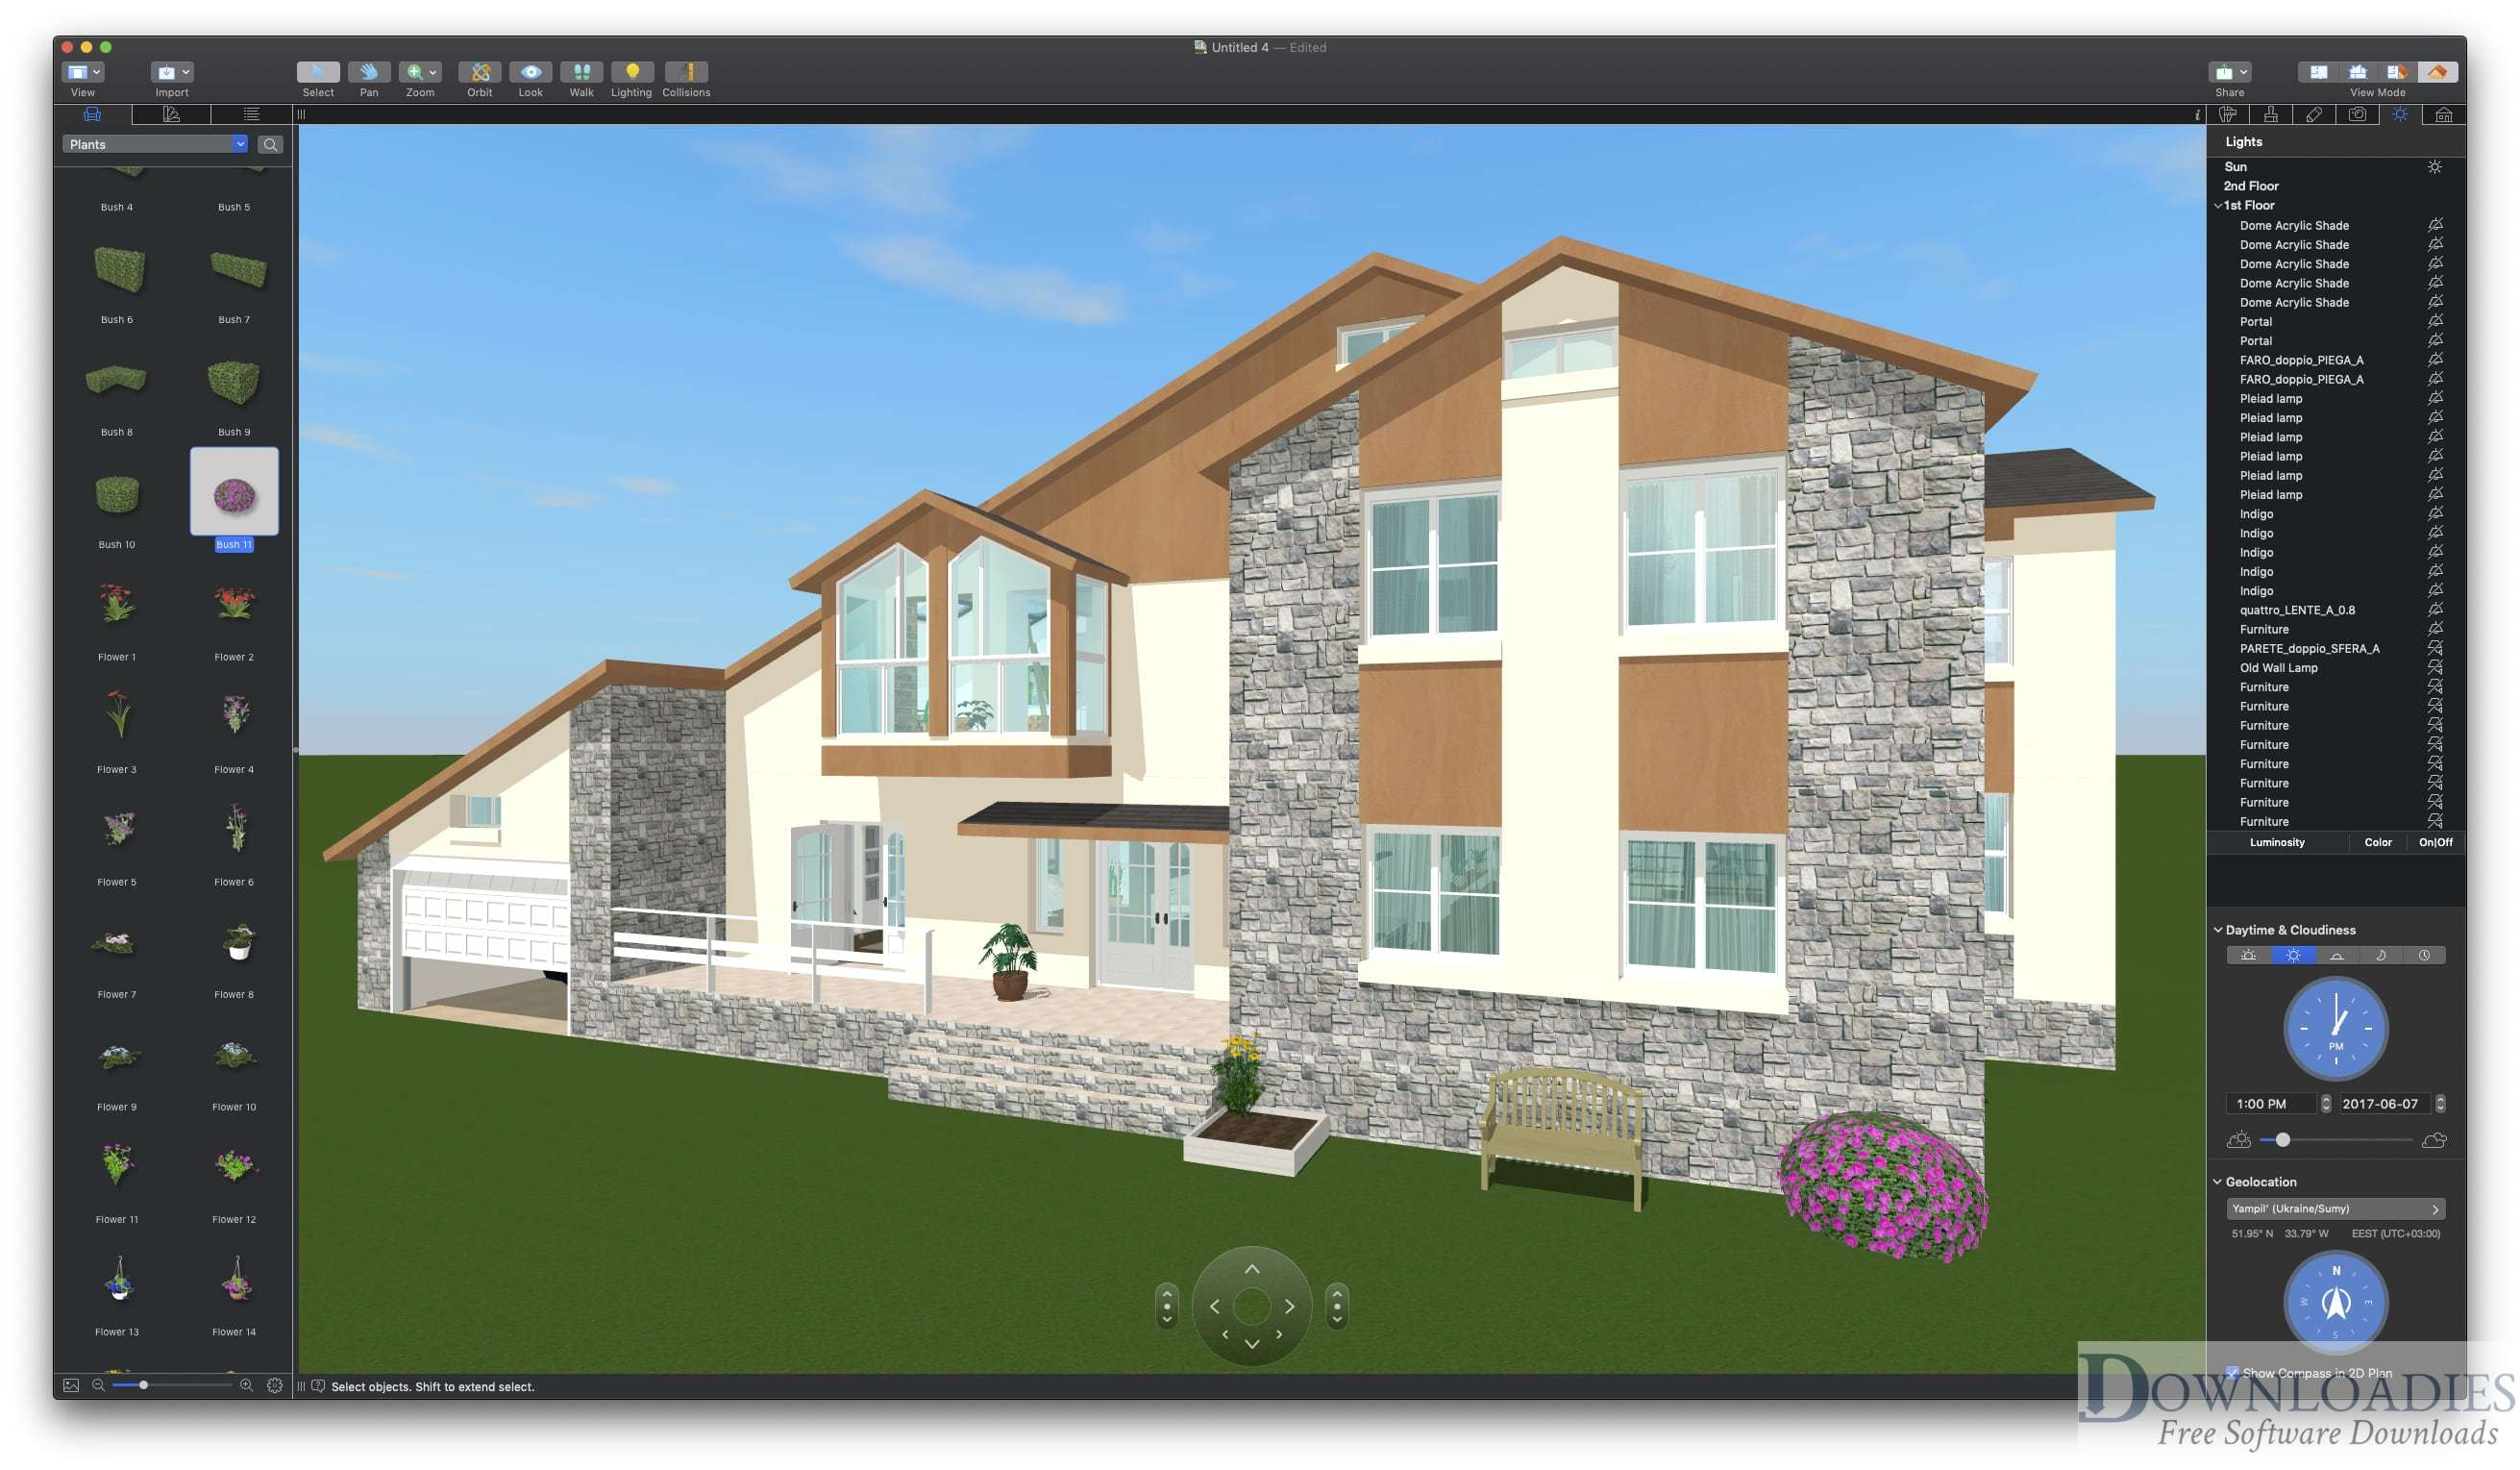 Live Home 3D for Mac free download